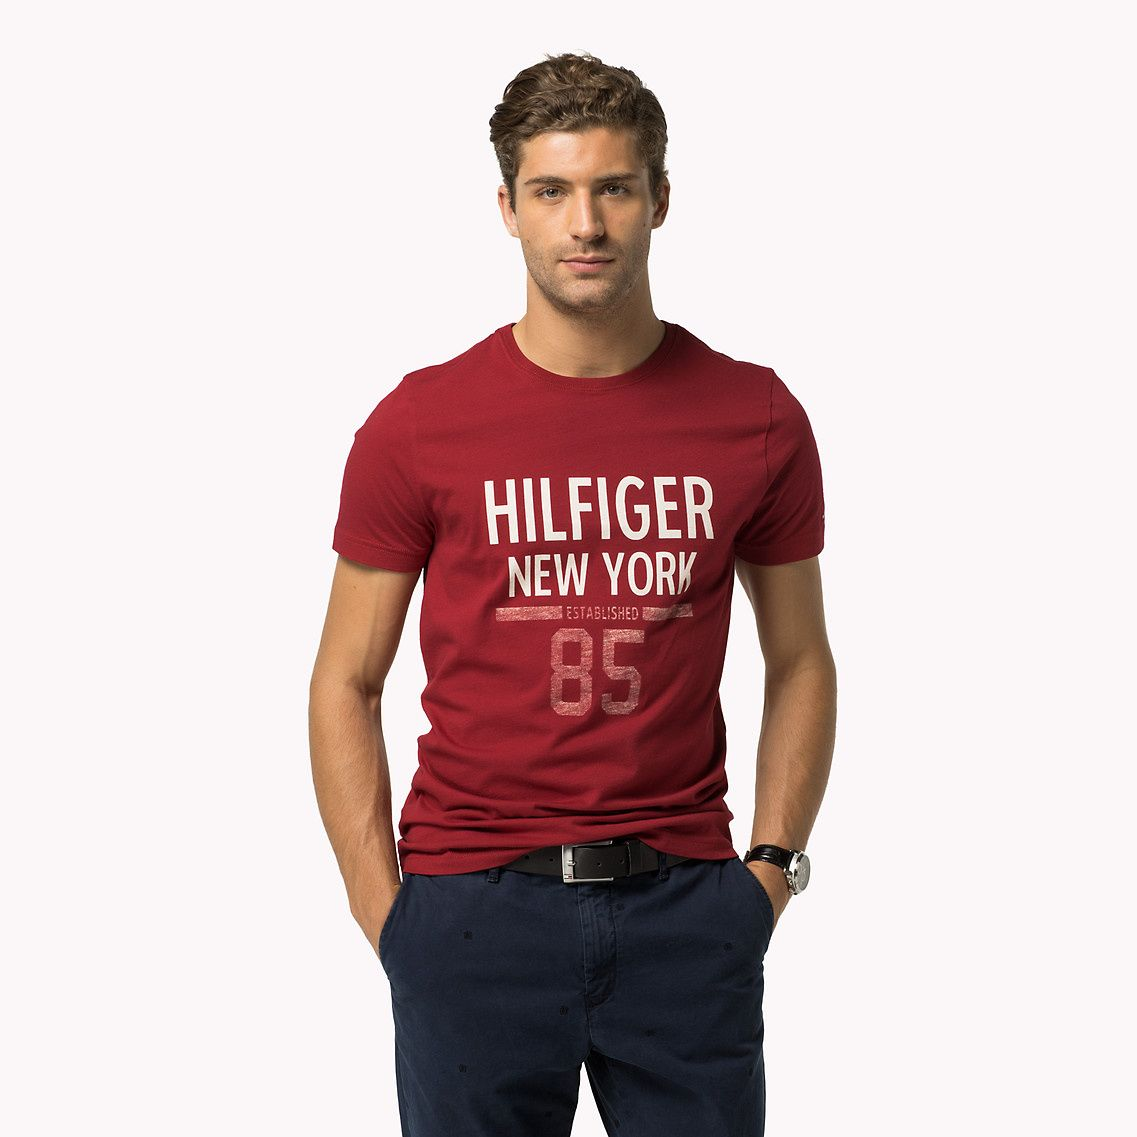 03872a3e376abe Shop the blue cotton printed crew neck t-shirt from the latest Tommy  Hilfiger t-shirts collection for men. Free returns & delivery over 50£.  8719253418808